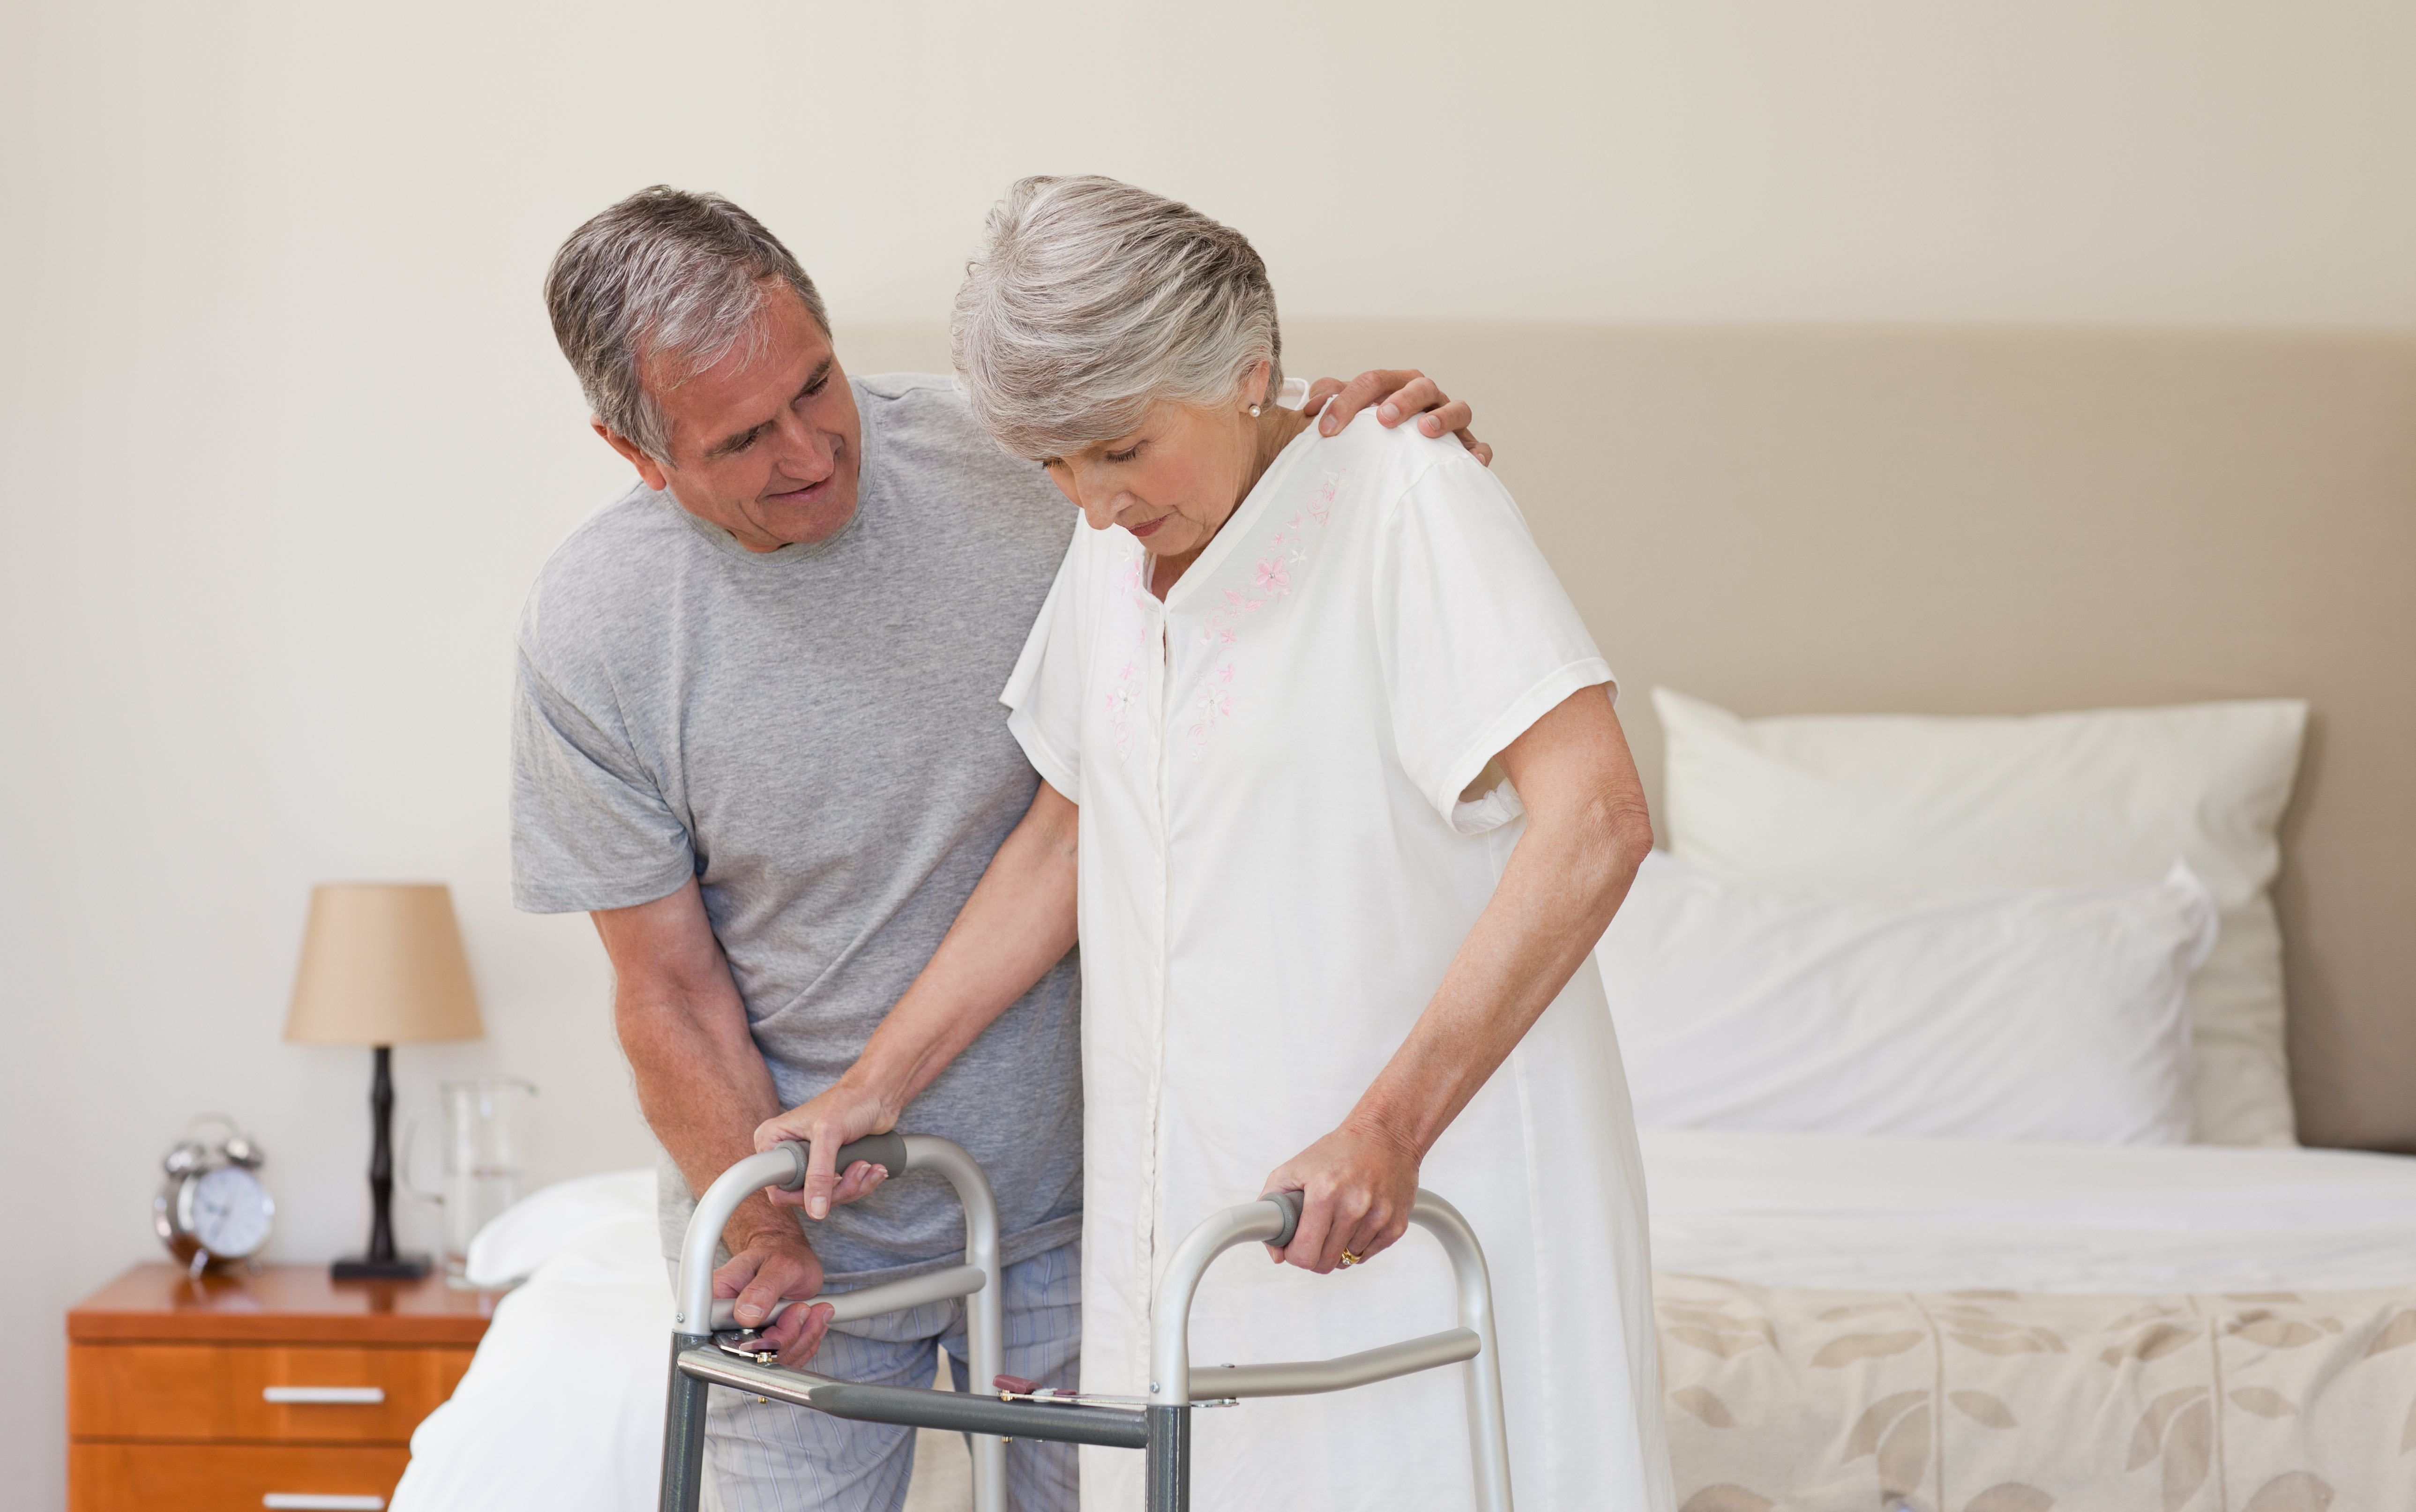 Home Safety Checklist for Seniors How to reduce falls in the home to protect your parent from broken bones. Did you know falls are the leading cause of fat